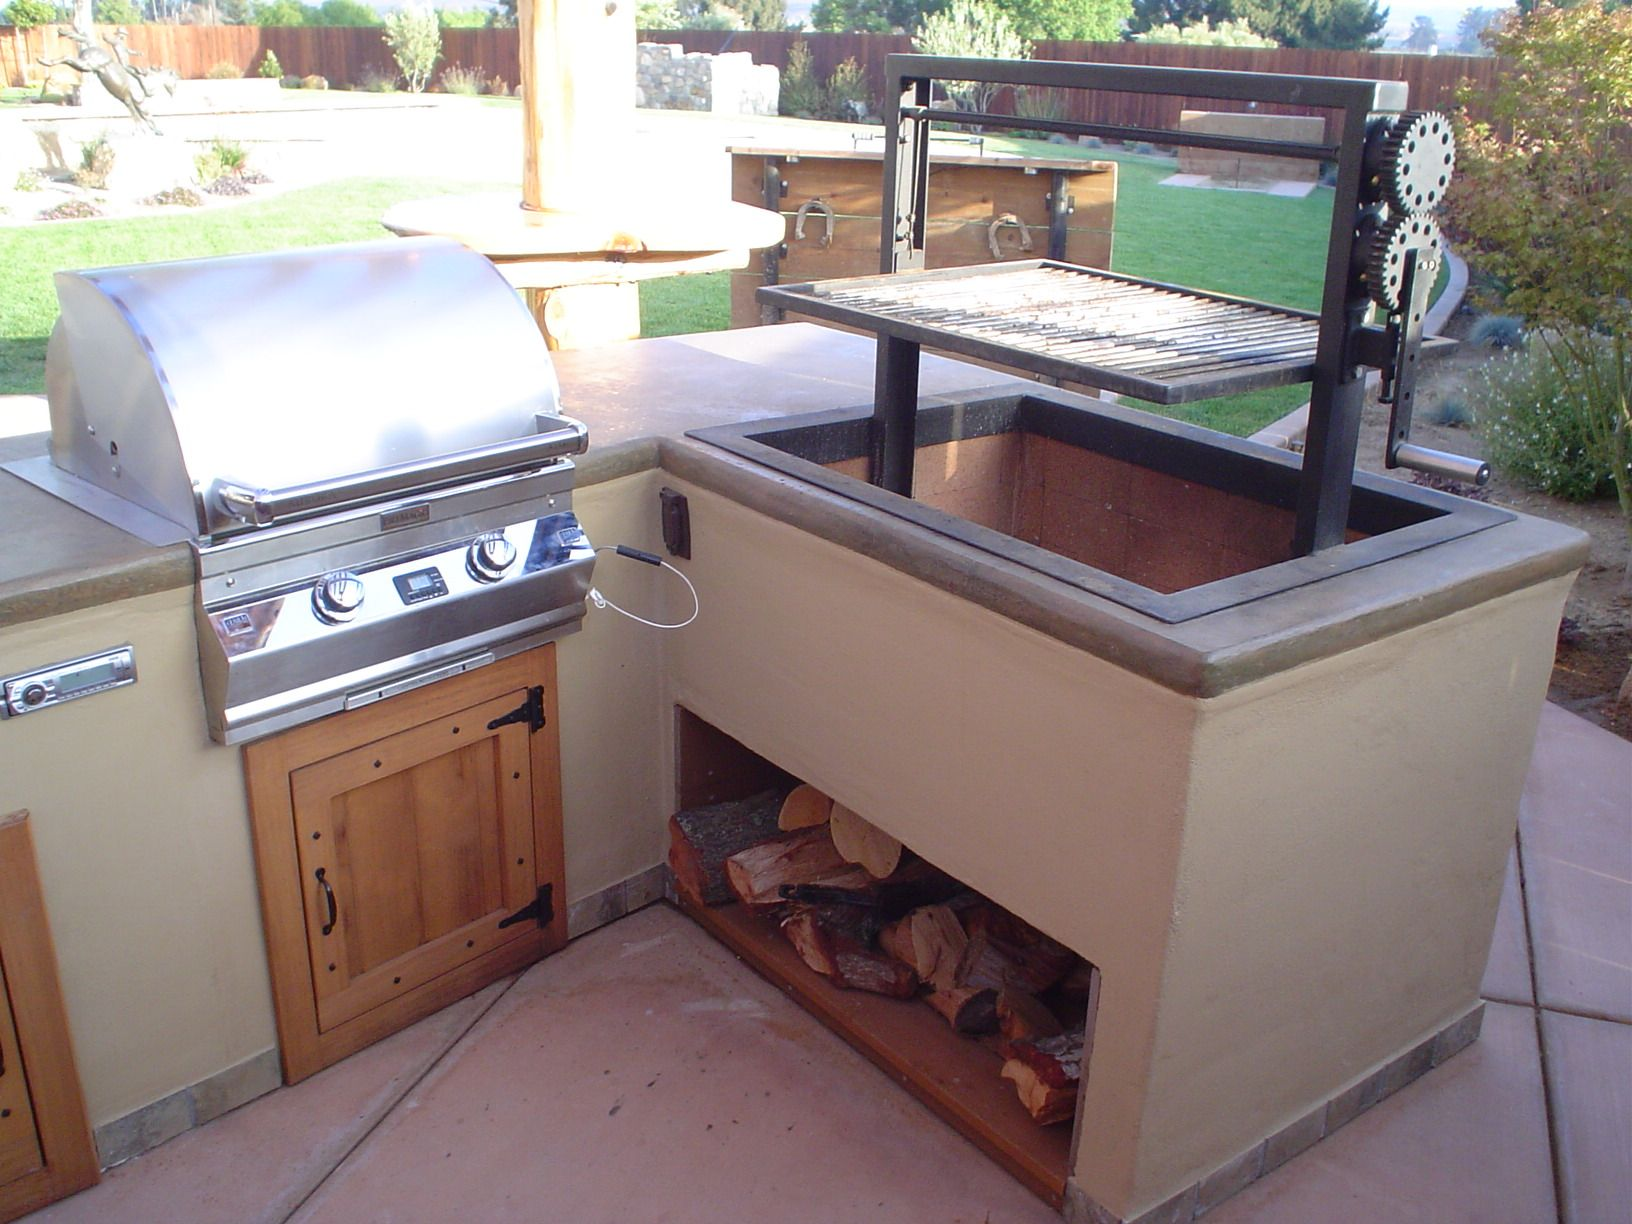 Custom Fabricated Santa Maria Grill With 430i Aurora Fire Magic Grill Built In Bbq Backyard Grilling Outdoor Kitchen Design